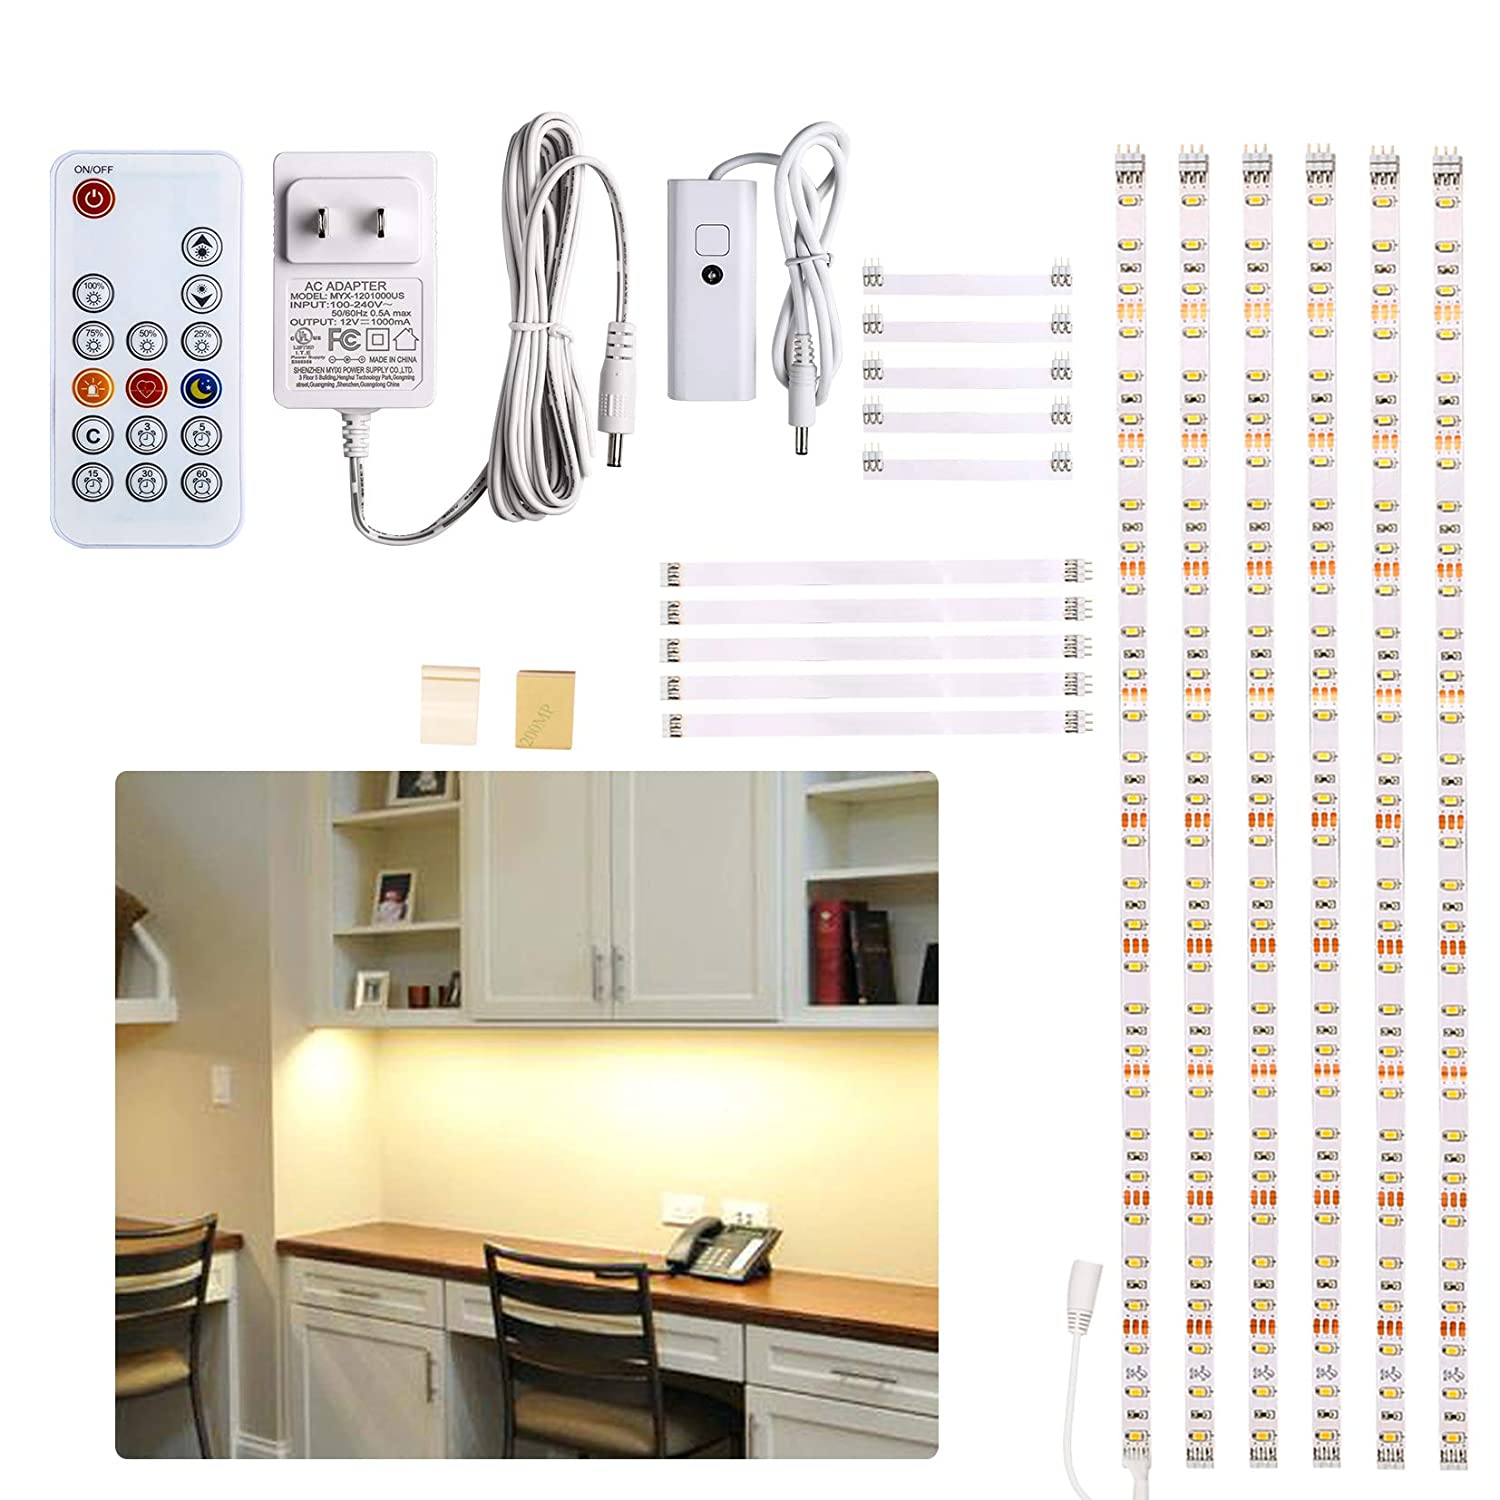 Under Cabinet LED lighting kit, 6 PCS LED Strip lights with Remote Control Dimmer and Adapter, Dimmable for Kitchen Cabinet,Counter,Shelf,TV Back,Showcase 6000K White, Super Bright 9.8 ft